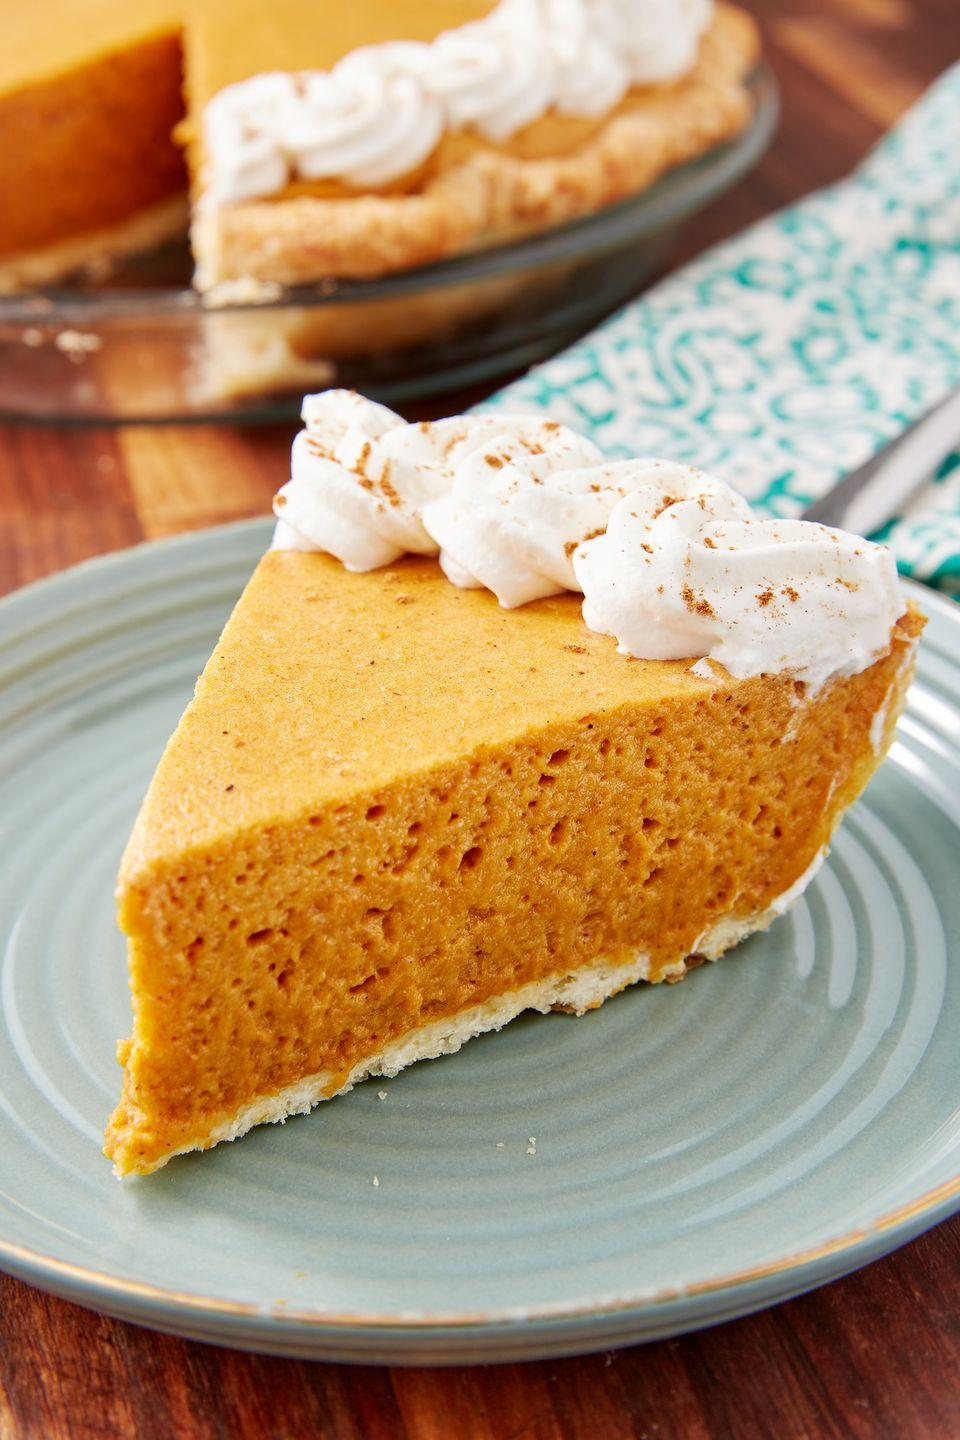 """<p>This pie is SO light and fluffy.</p><p>Get the recipe from <a href=""""https://www.delish.com/cooking/recipe-ideas/a28702699/pumpkin-chiffon-pie-recipe/"""" rel=""""nofollow noopener"""" target=""""_blank"""" data-ylk=""""slk:Delish"""" class=""""link rapid-noclick-resp"""">Delish</a>.</p>"""